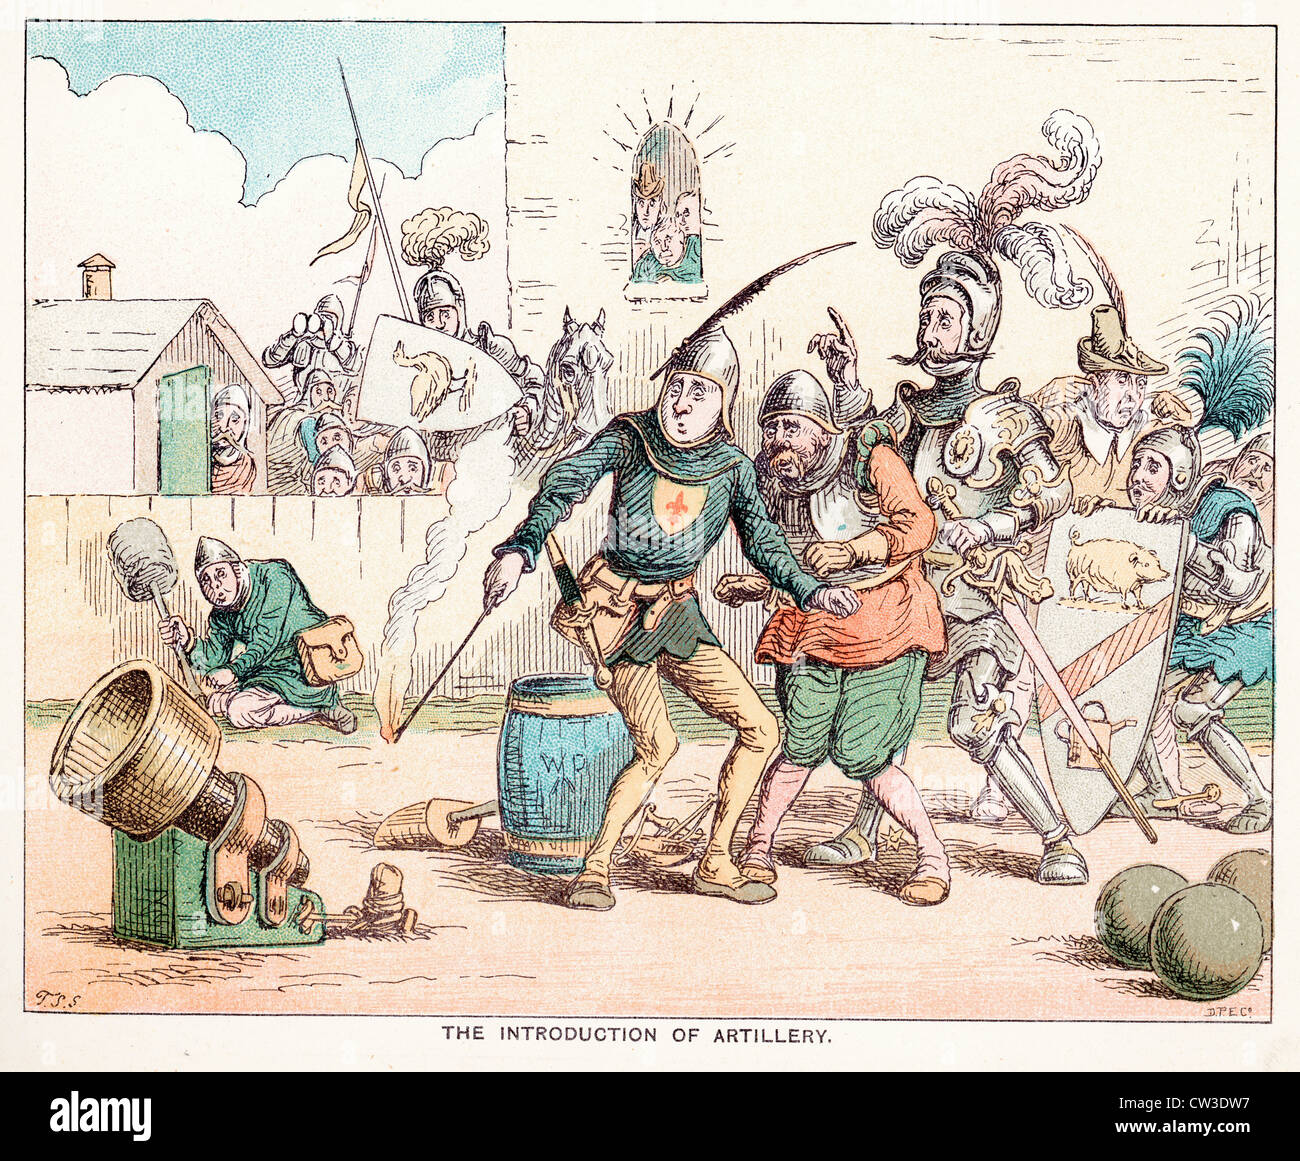 Comic Sketch by T S Seccombe showing the introduction of artillery in the middle ages - Stock Image